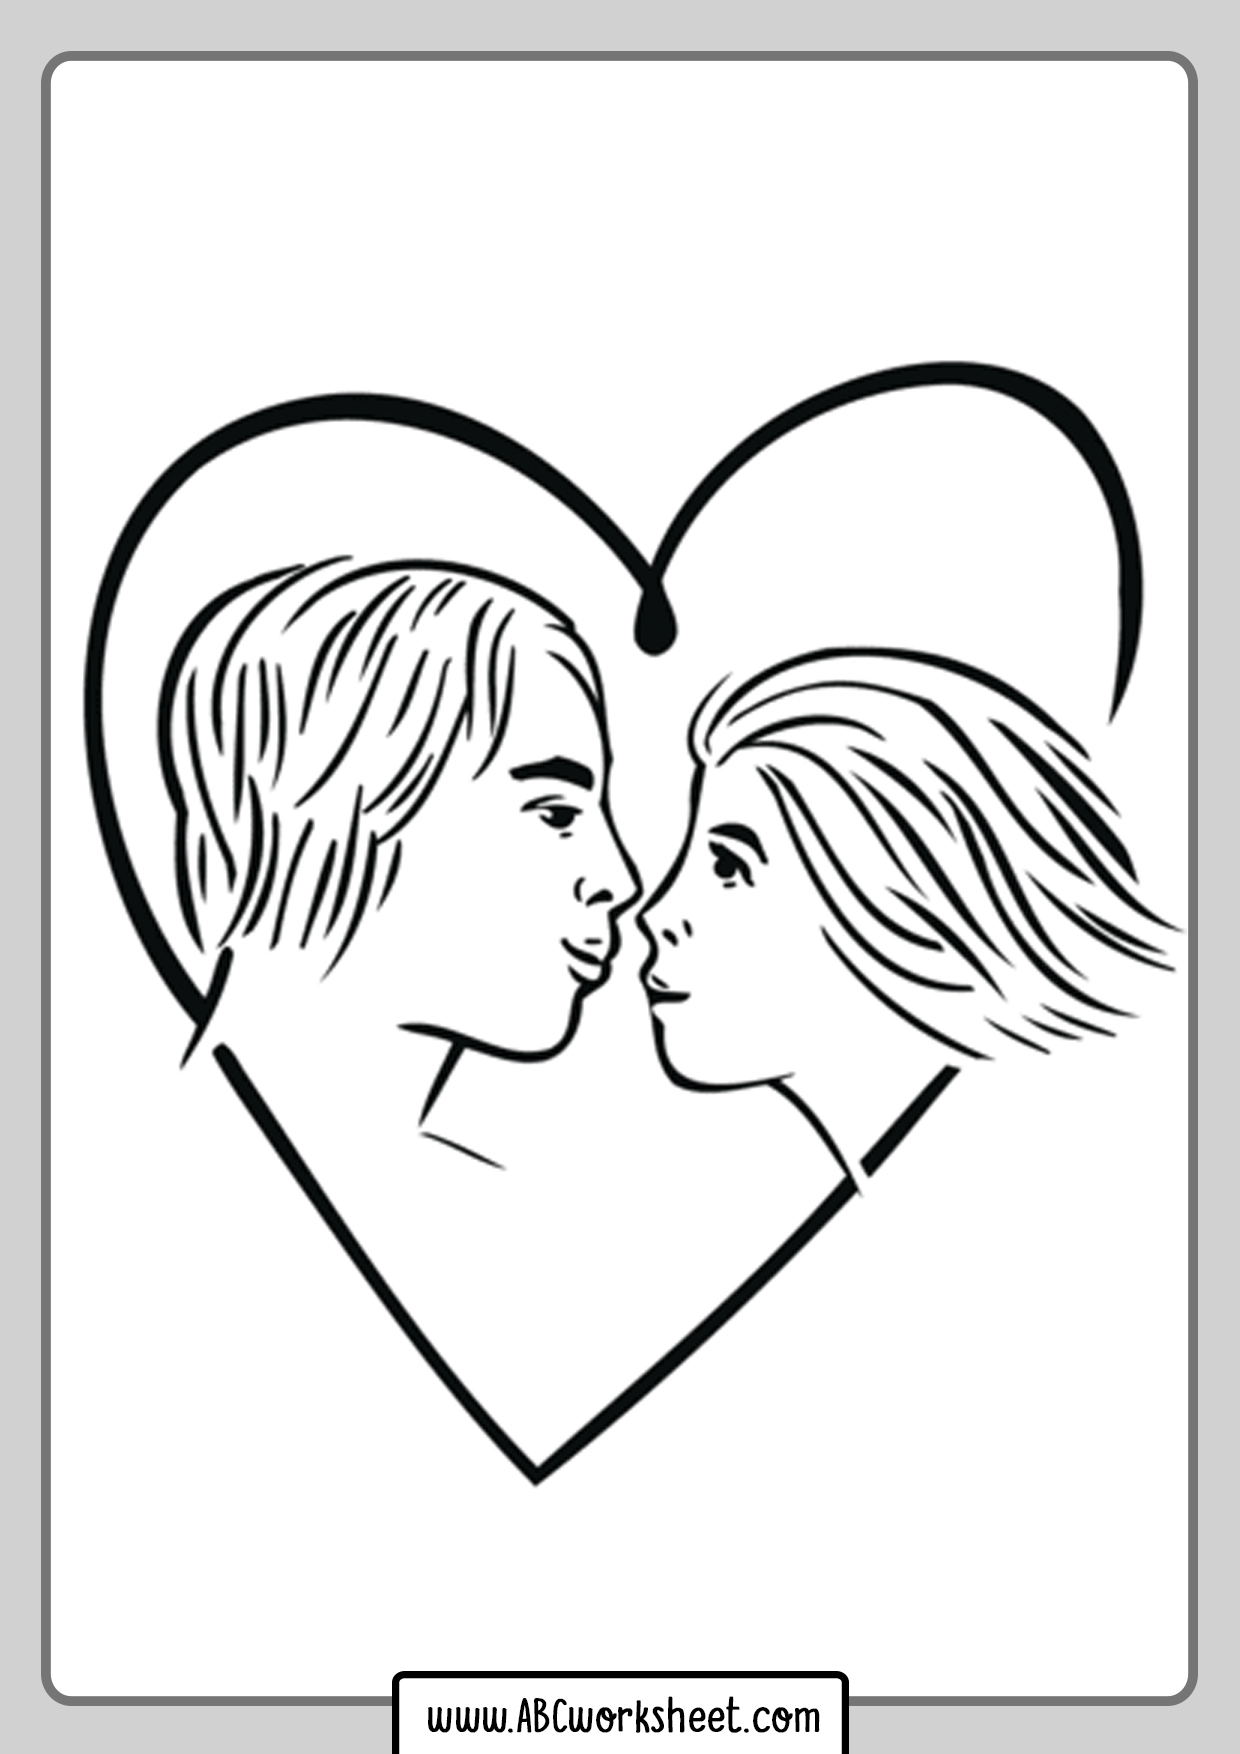 Love Copuple Heart Coloring Page